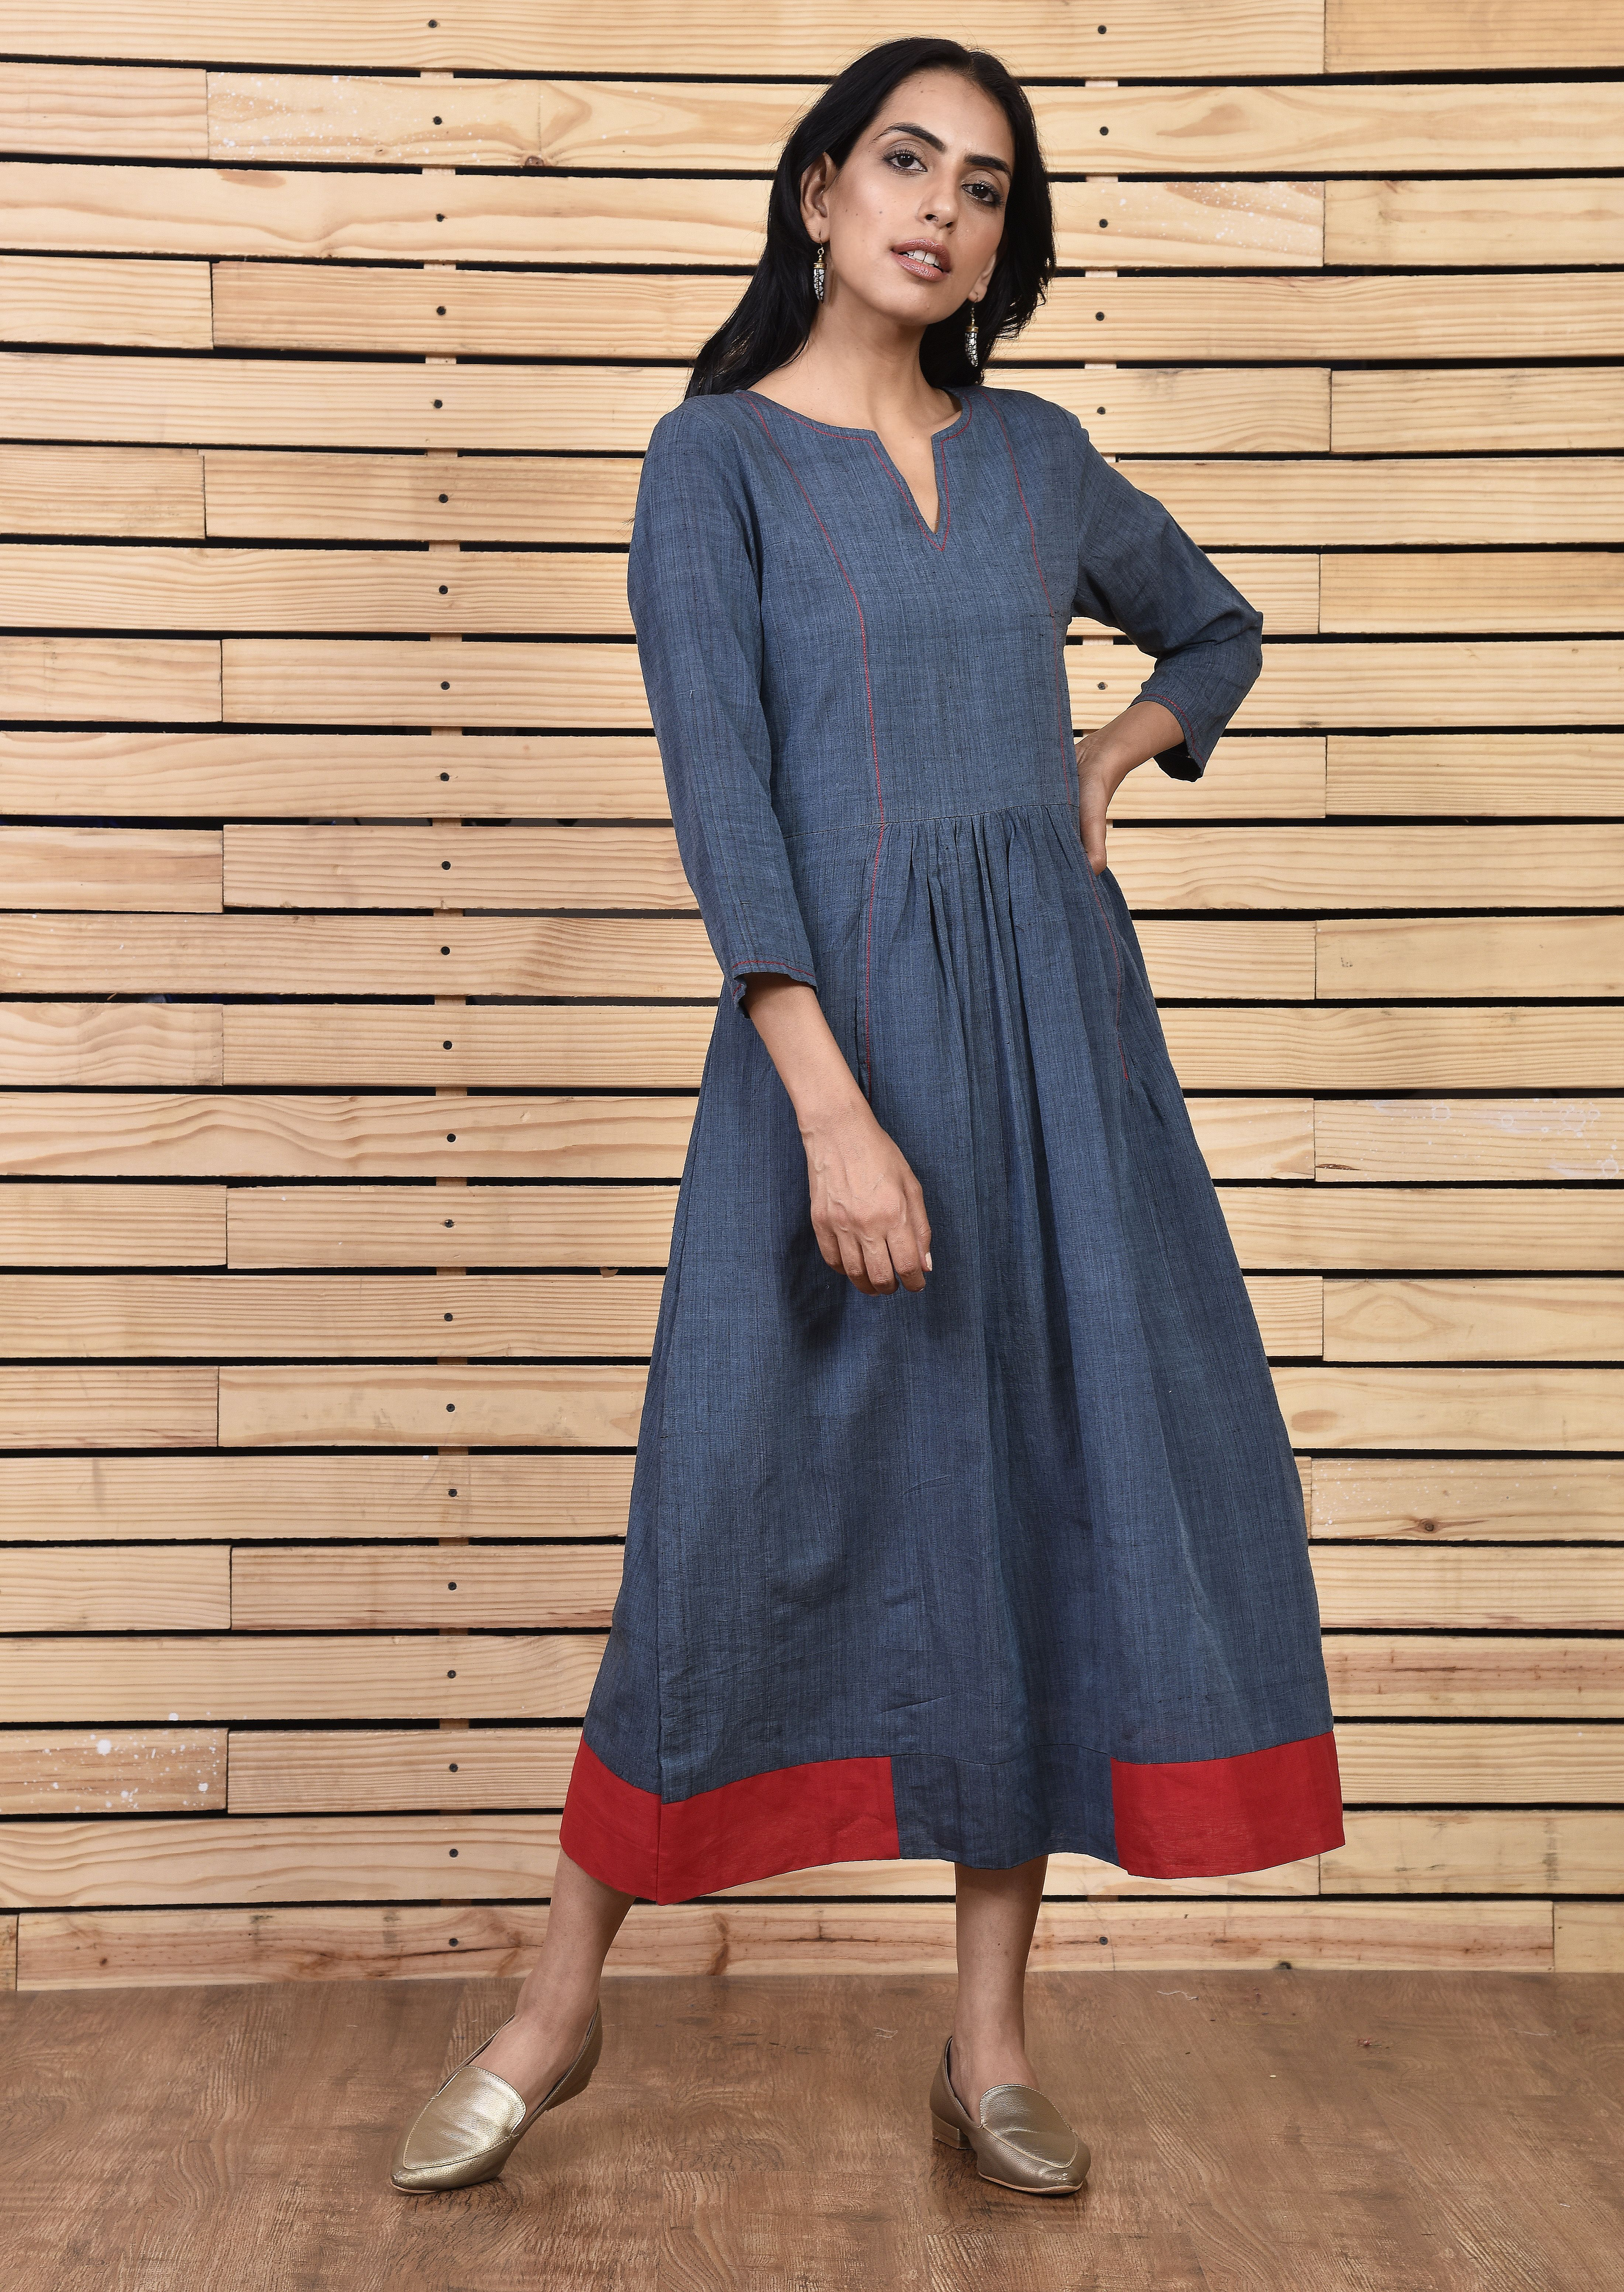 Maxi Dress With Sleeves Charcoal Gray Maxi Dress With Sleeves Cotton Dress Summer Shift Dress [ 6208 x 4400 Pixel ]